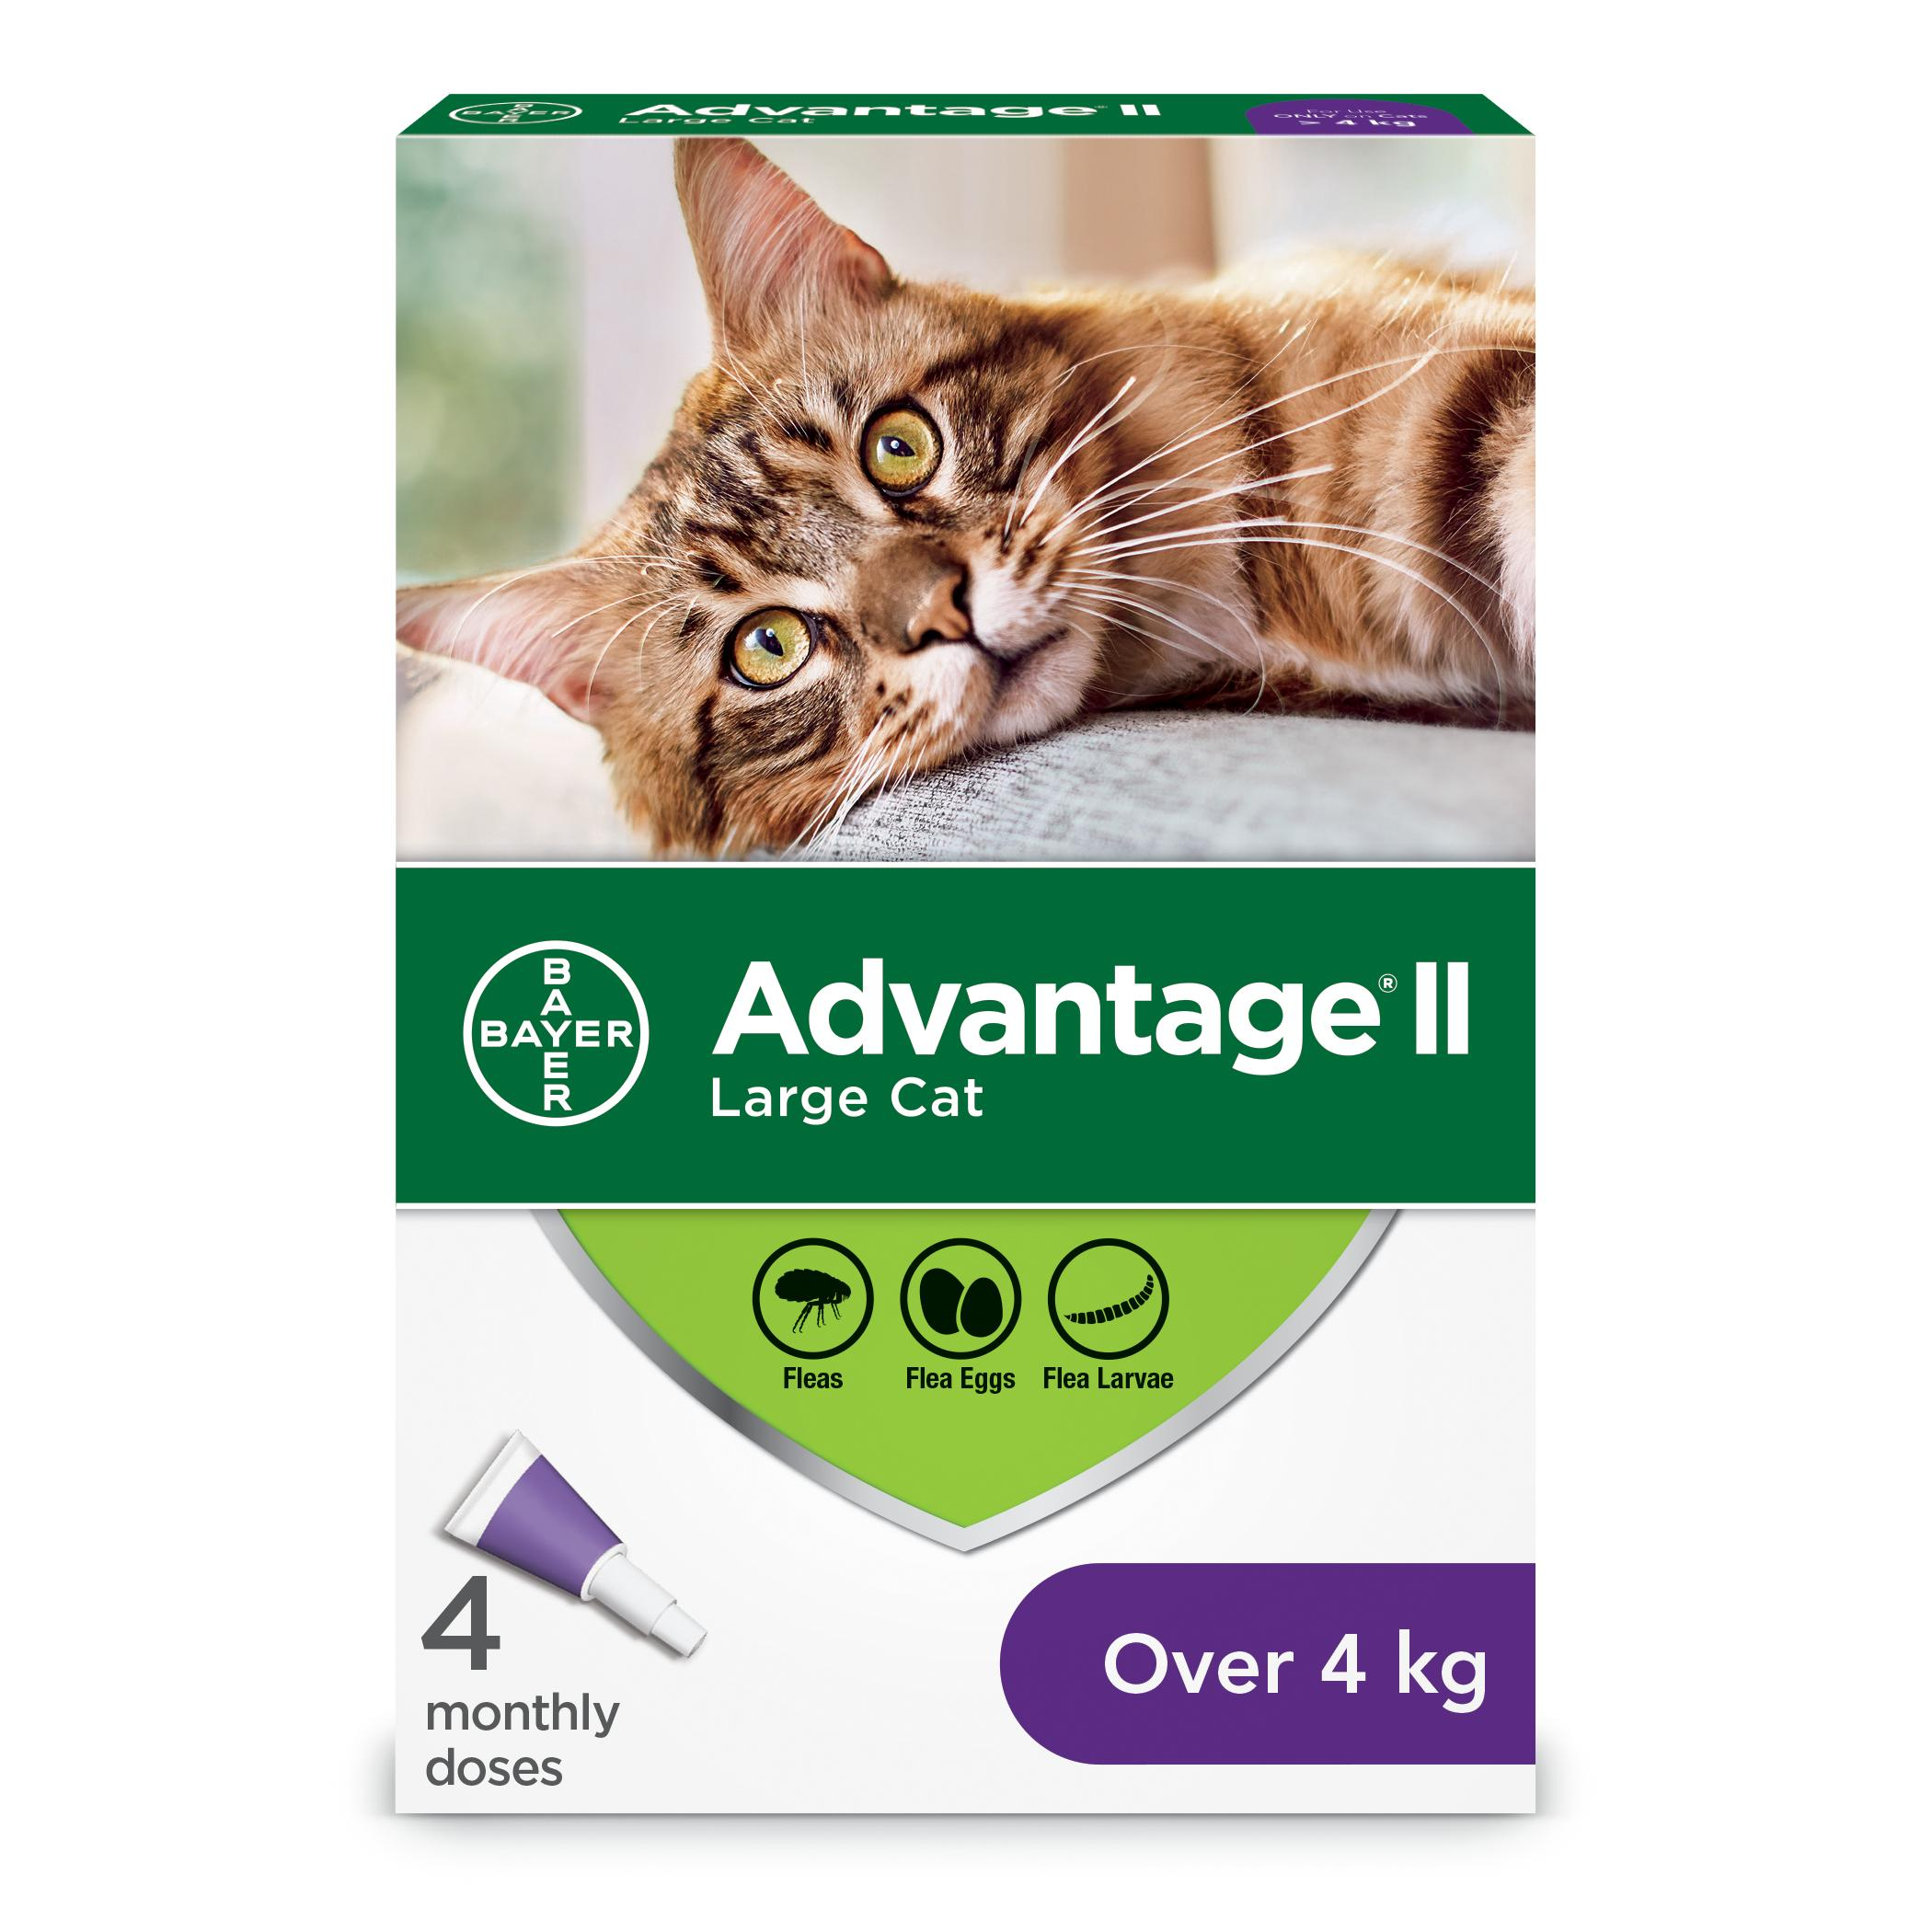 Bayer Advantage II Flea Protection for Large Cats over 4-kg, 4-pk